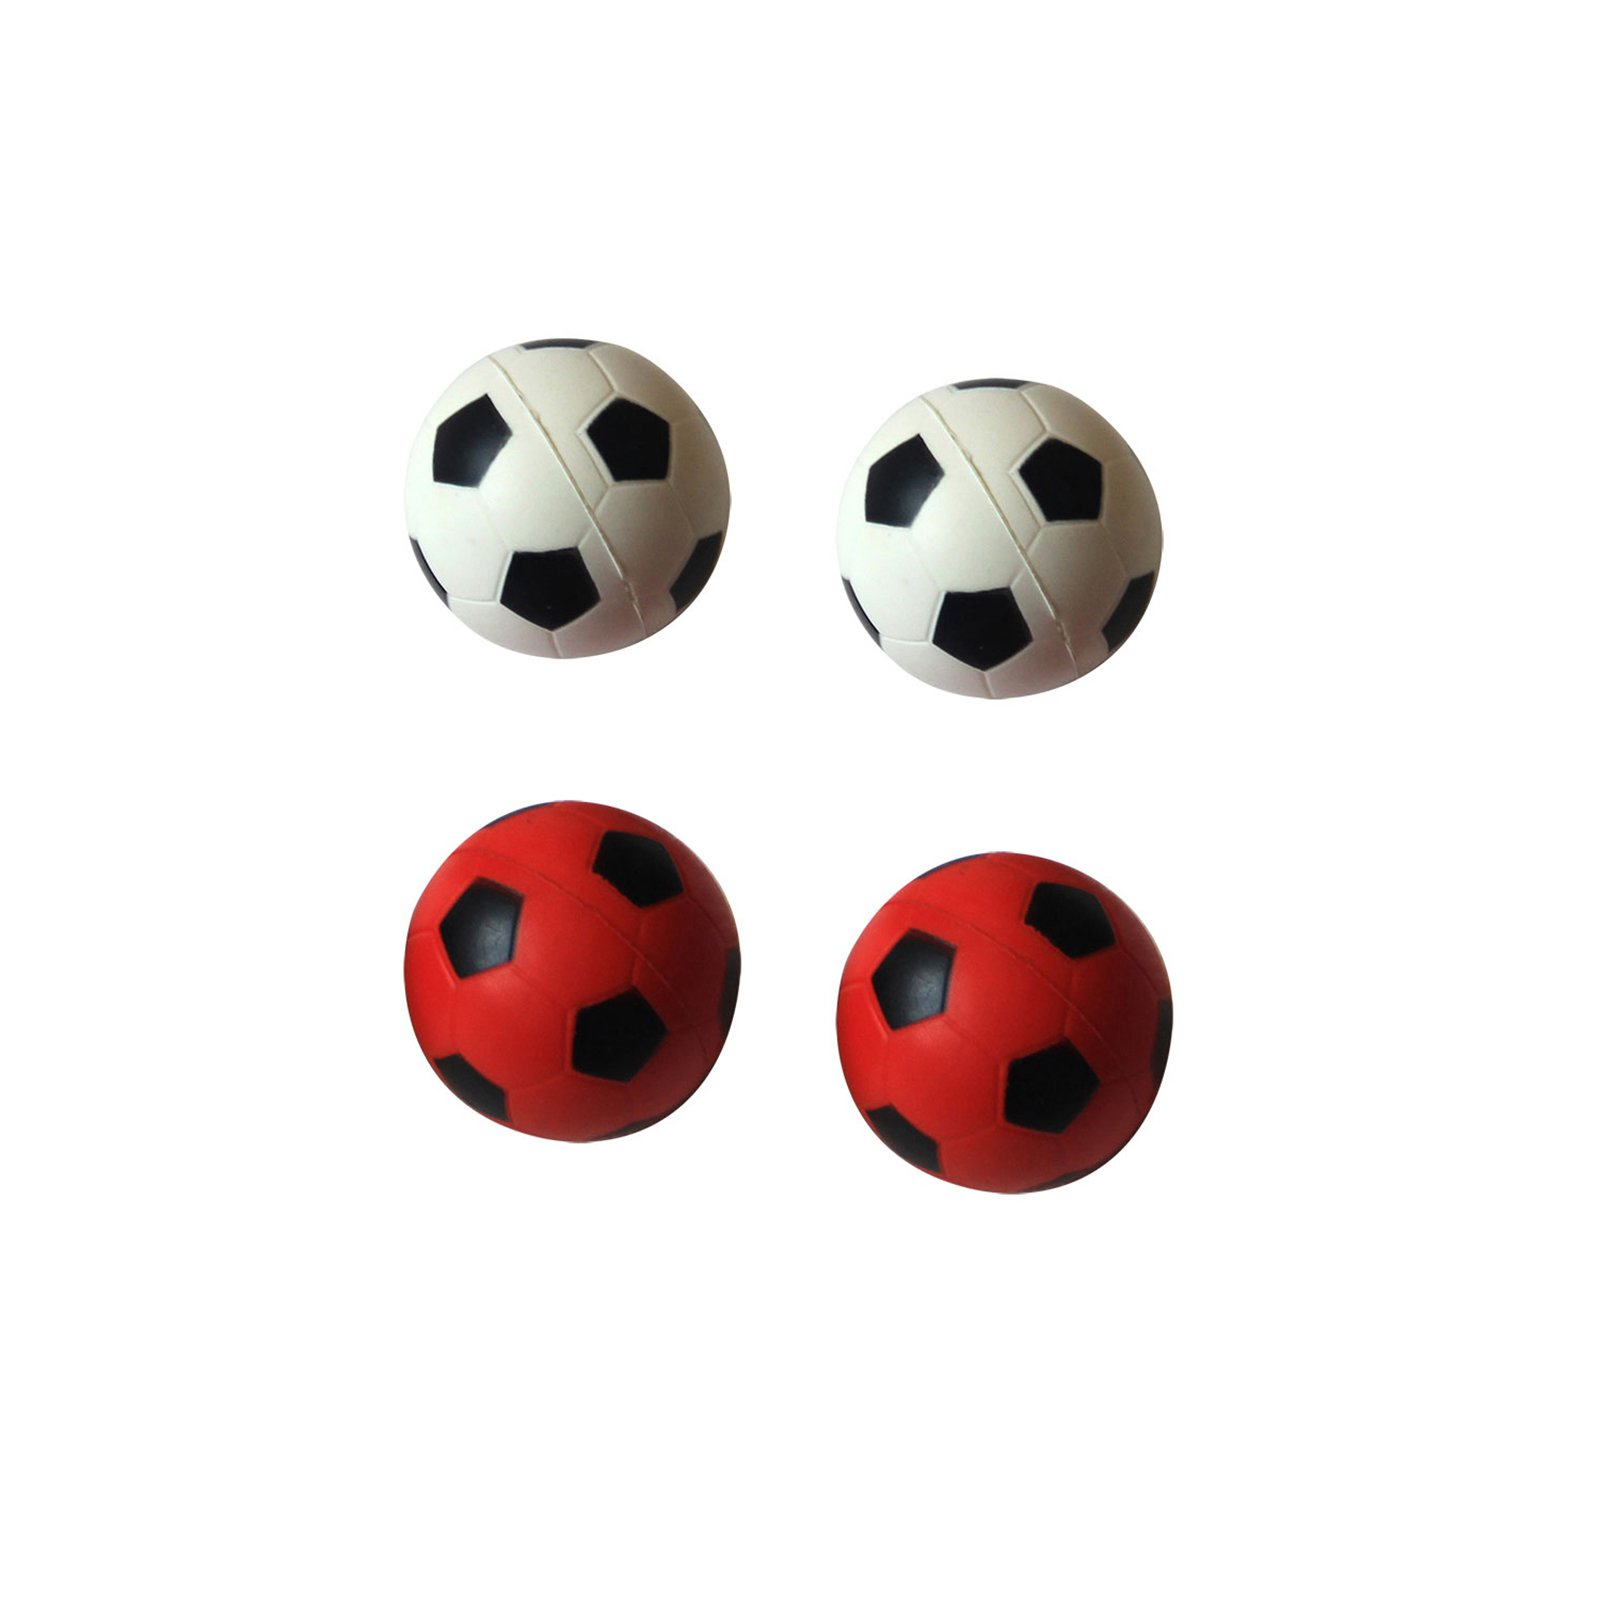 6-Pack Bouncing Sponge Soccer Ball, Red White, 12 Pieces by Iconic Pet